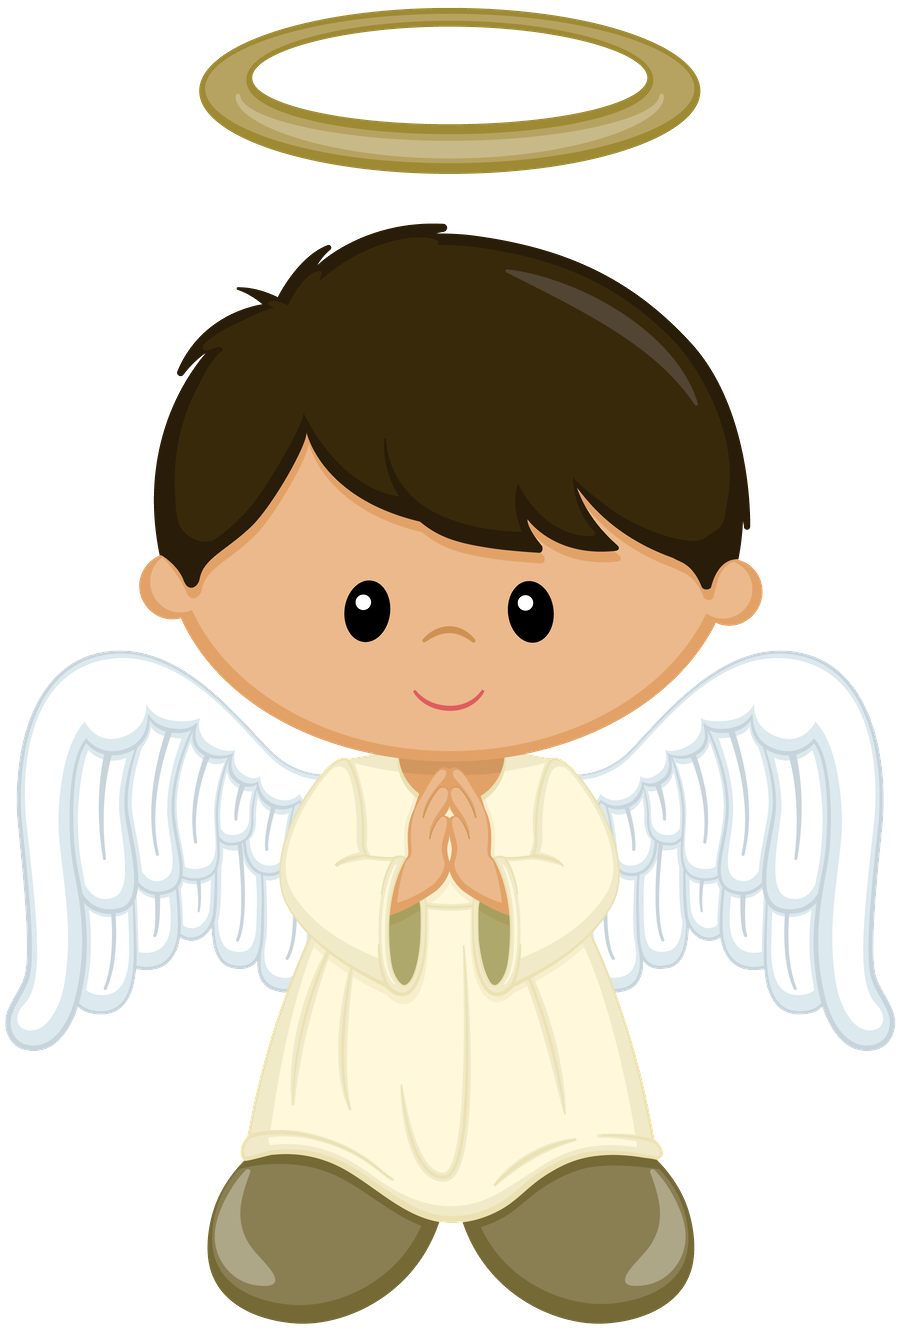 christine staniforth imprimibles. Lds clipart baptism